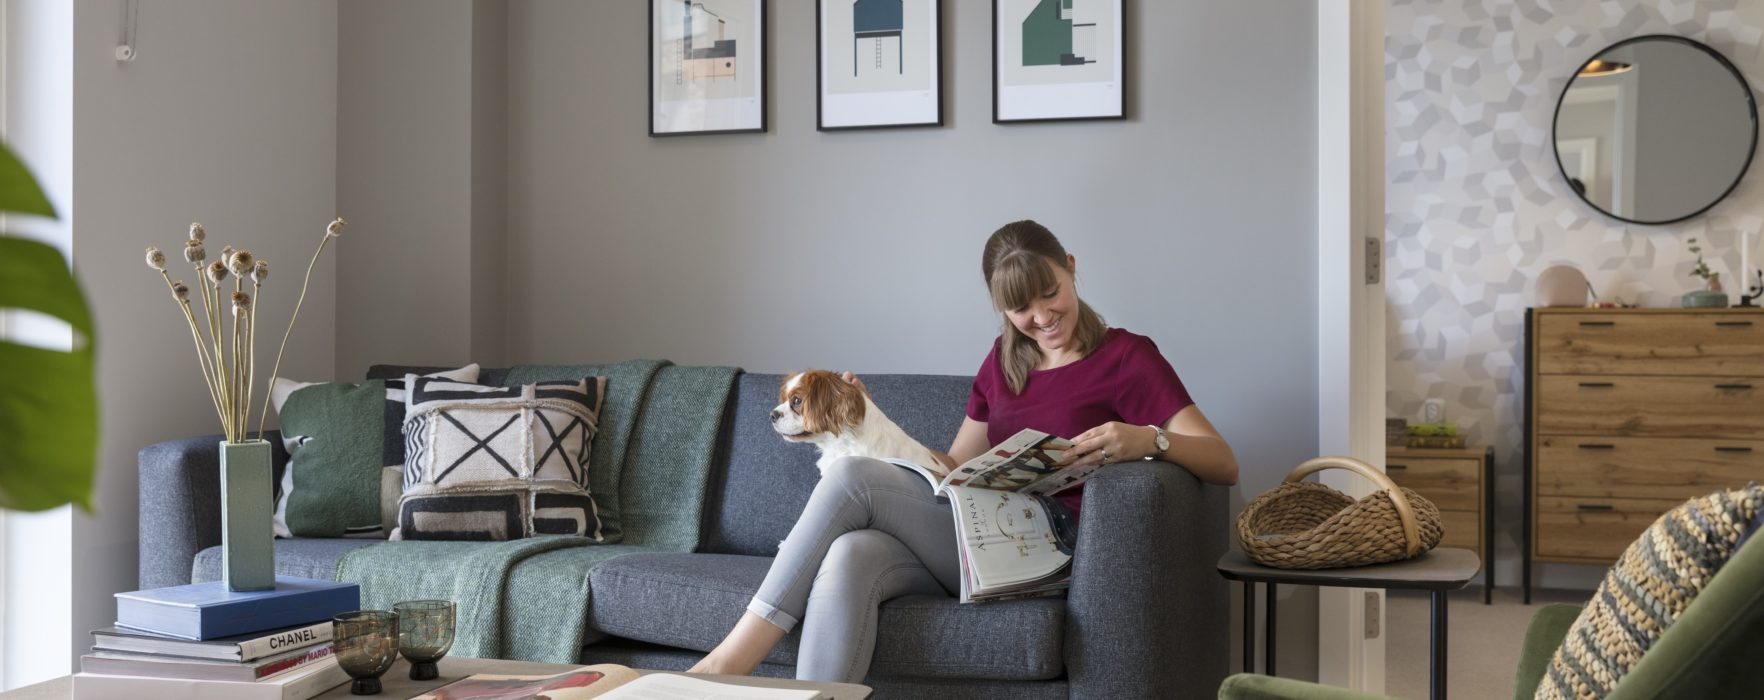 Generation-rent is here to stay, according to lettings specialists